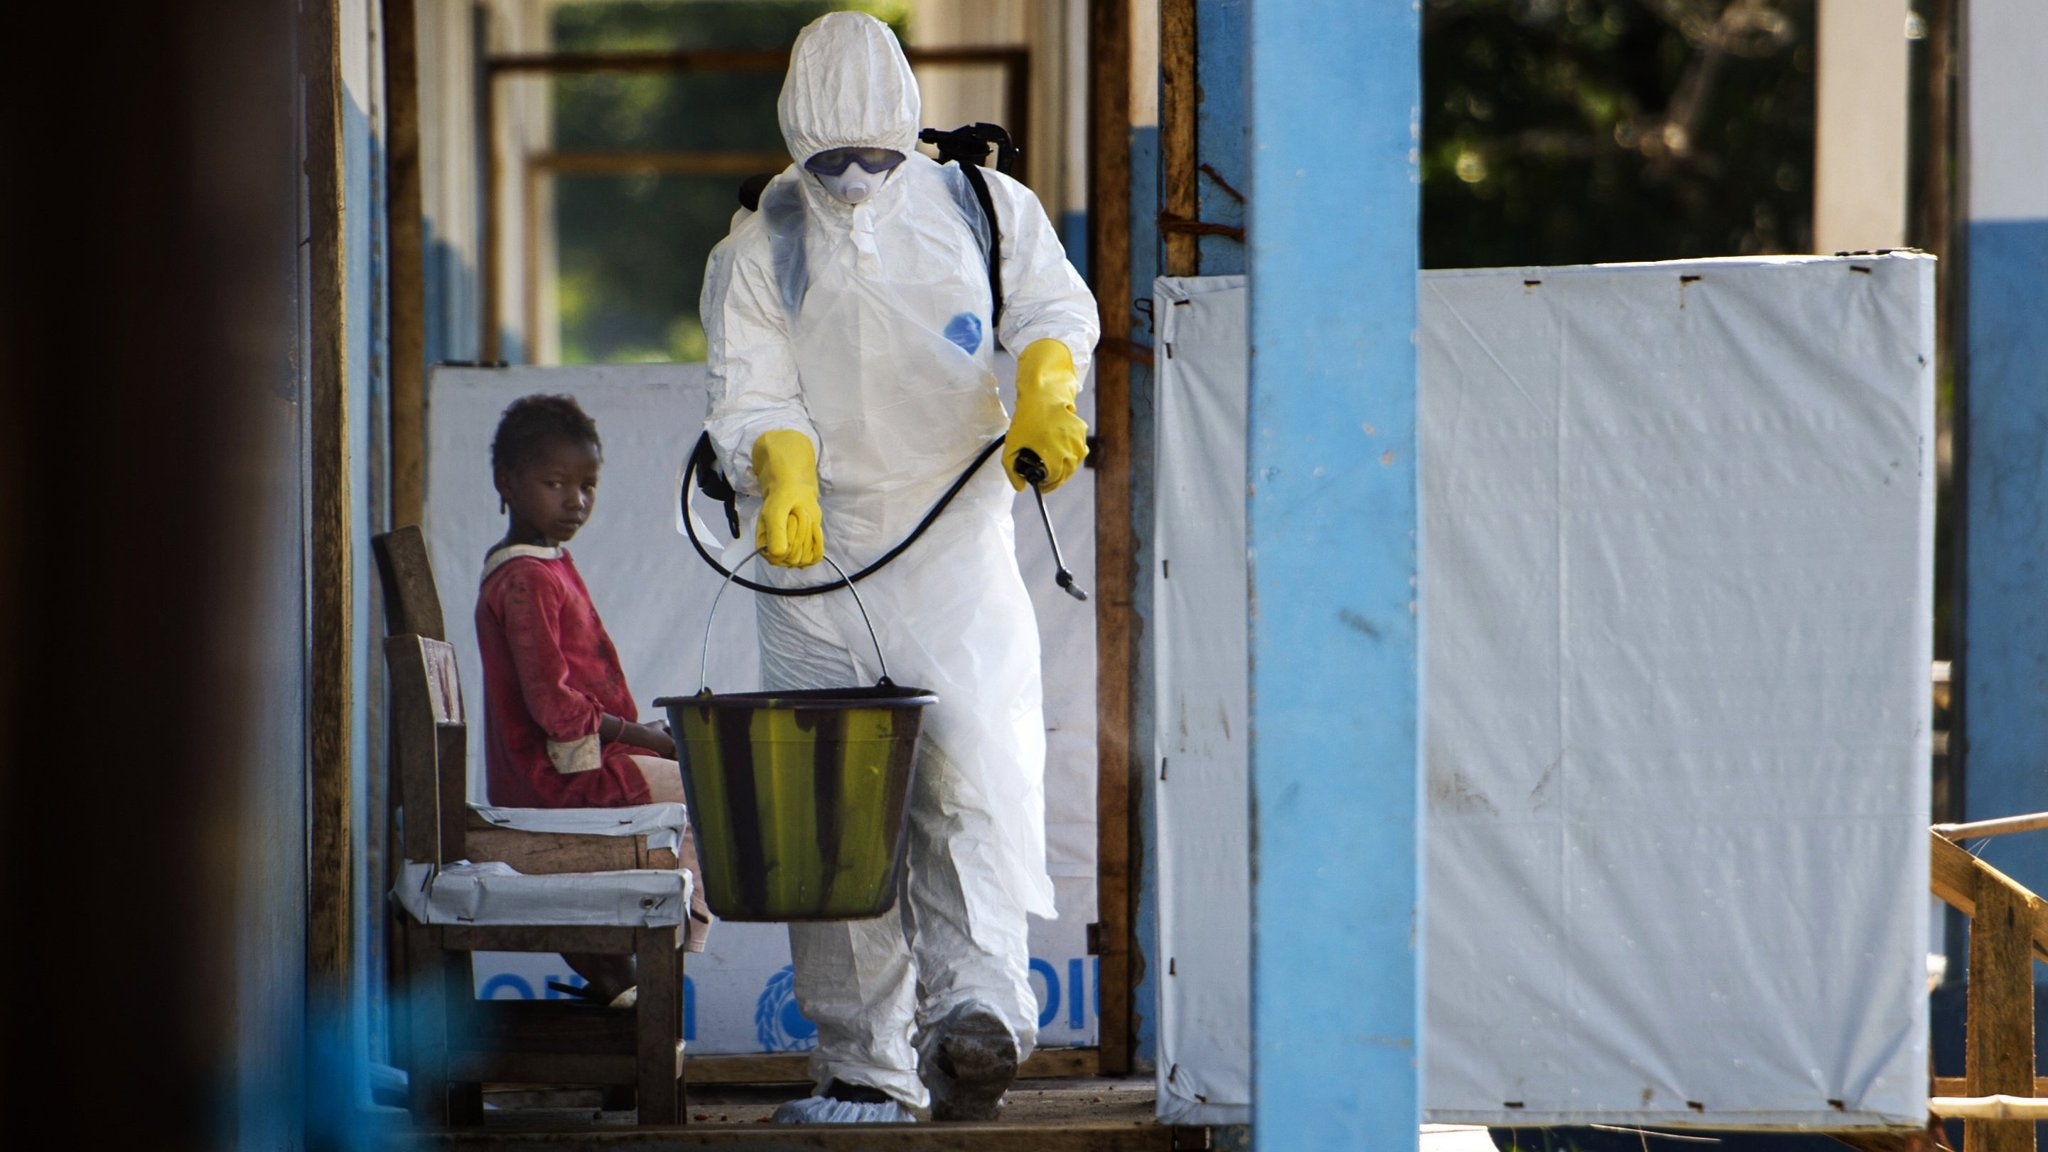 Global health equity is needed to prevent an Ebola pandemic